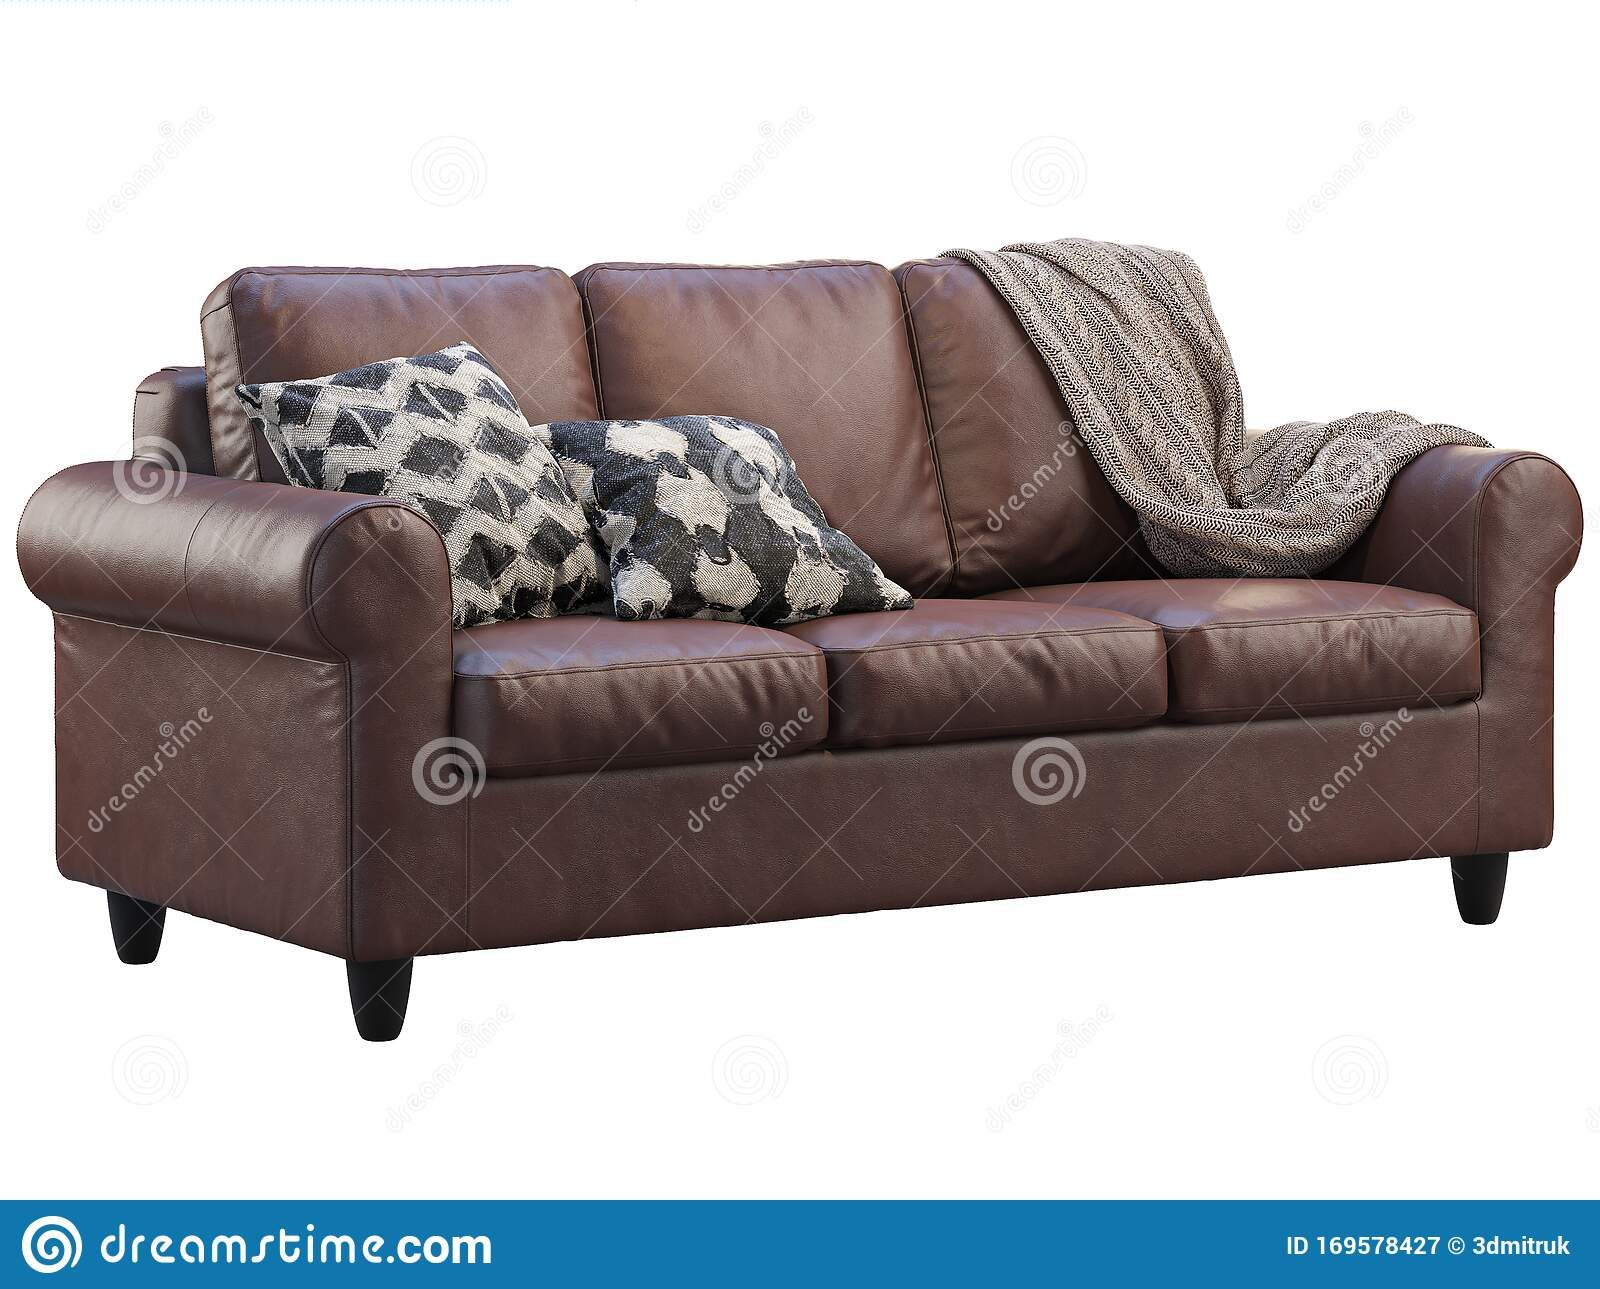 Picture of: Modern Brown Leather Sofa With Pillows And Plaid 3d Render Stock Illustration Illustration Of Throw Brown 169578427